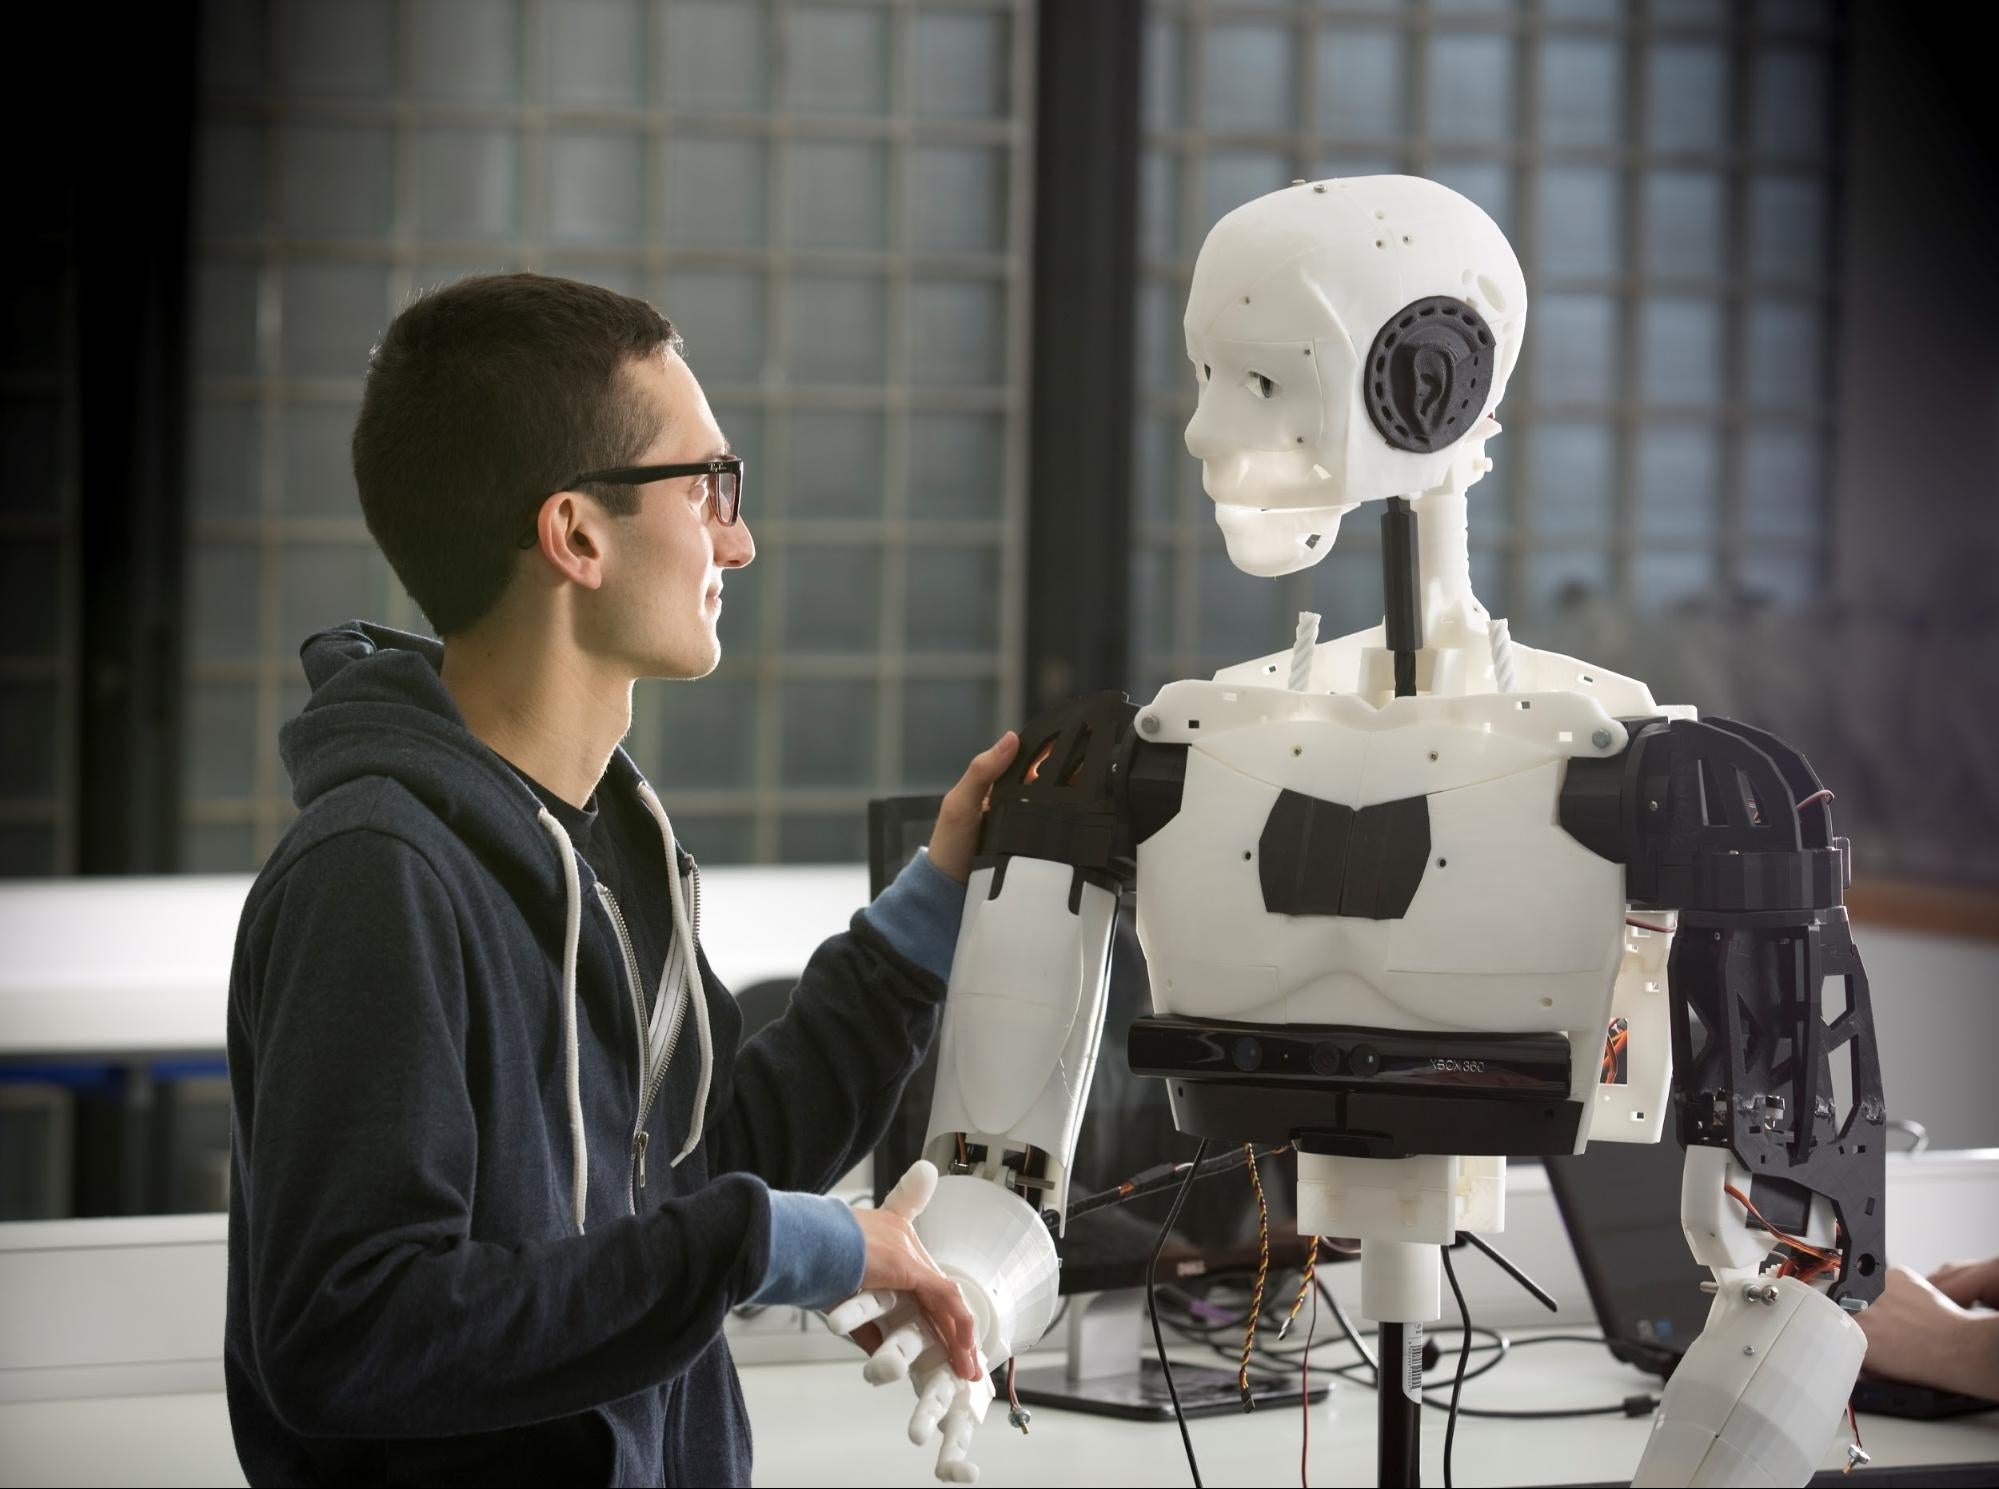 Will Humans Love Robots More When They're Flawed? Absolutely Not.